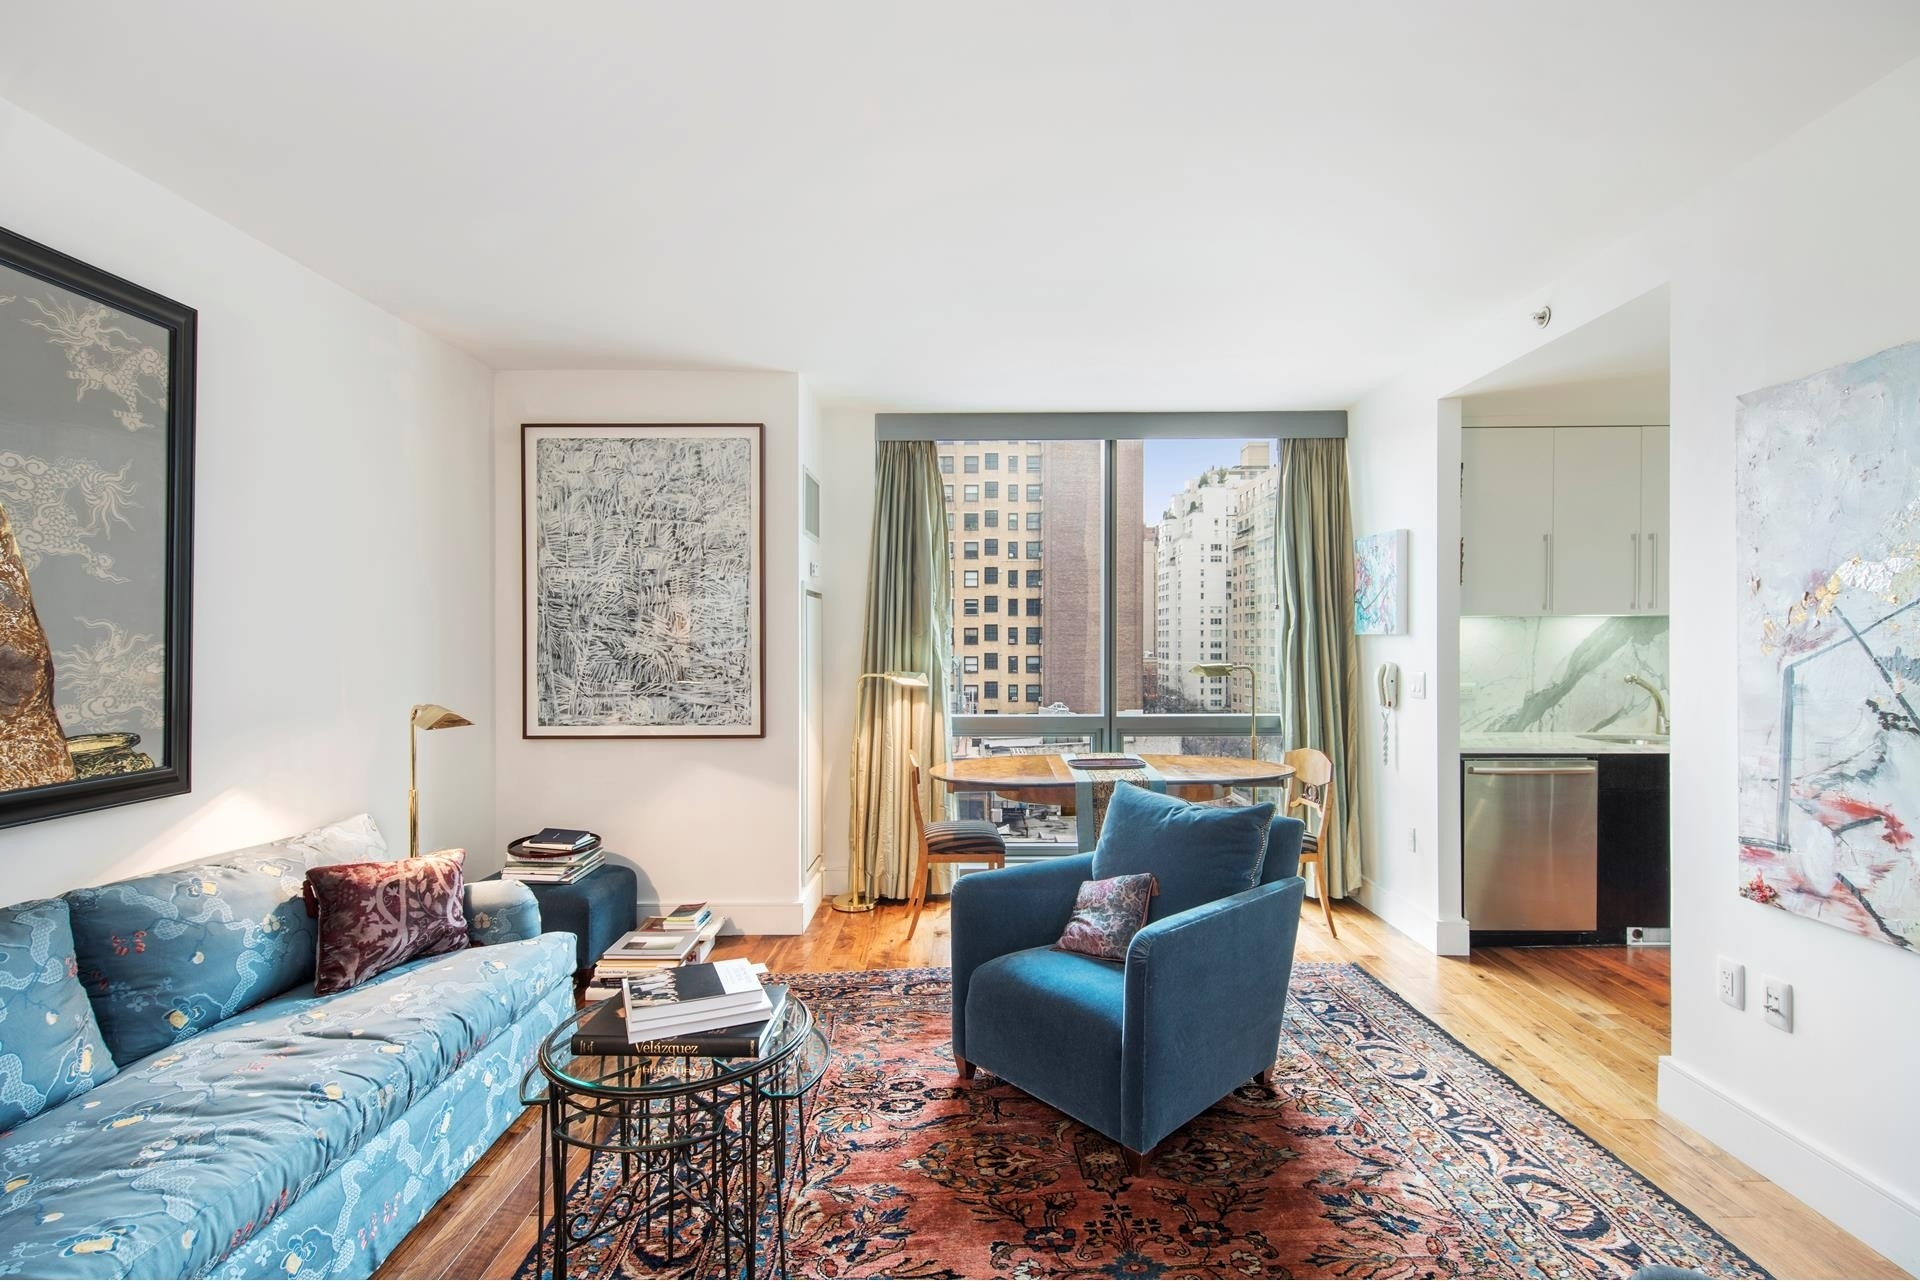 Property at 300 East 79th St, 7A Upper East Side, New York, NY 10075